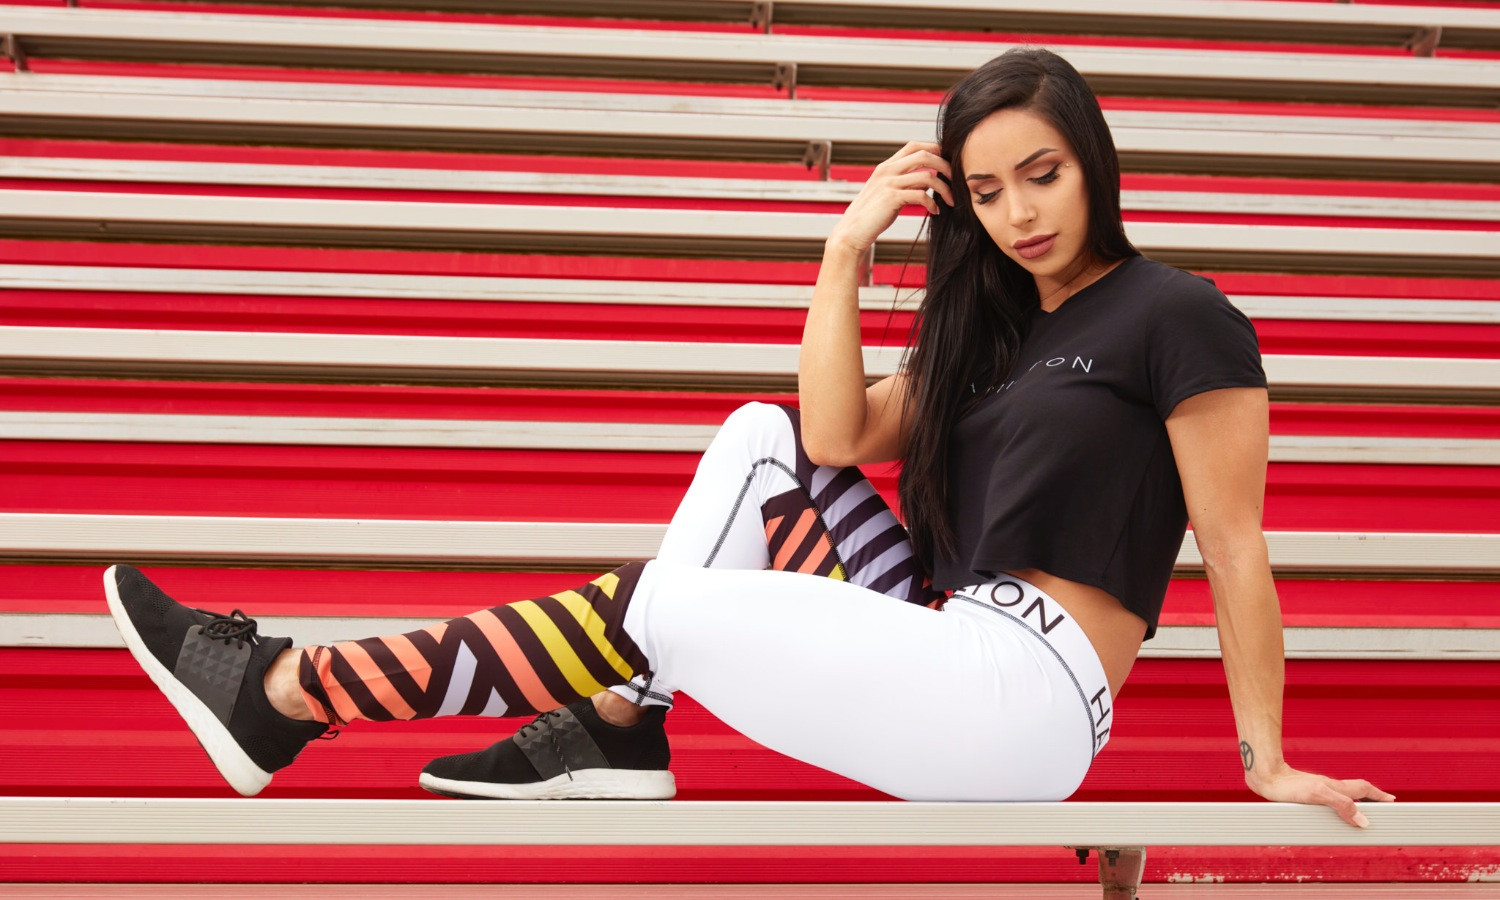 Hollywood Hamilton Clothing Streetleisure Collection 2018 zig zag leggings and black crop top